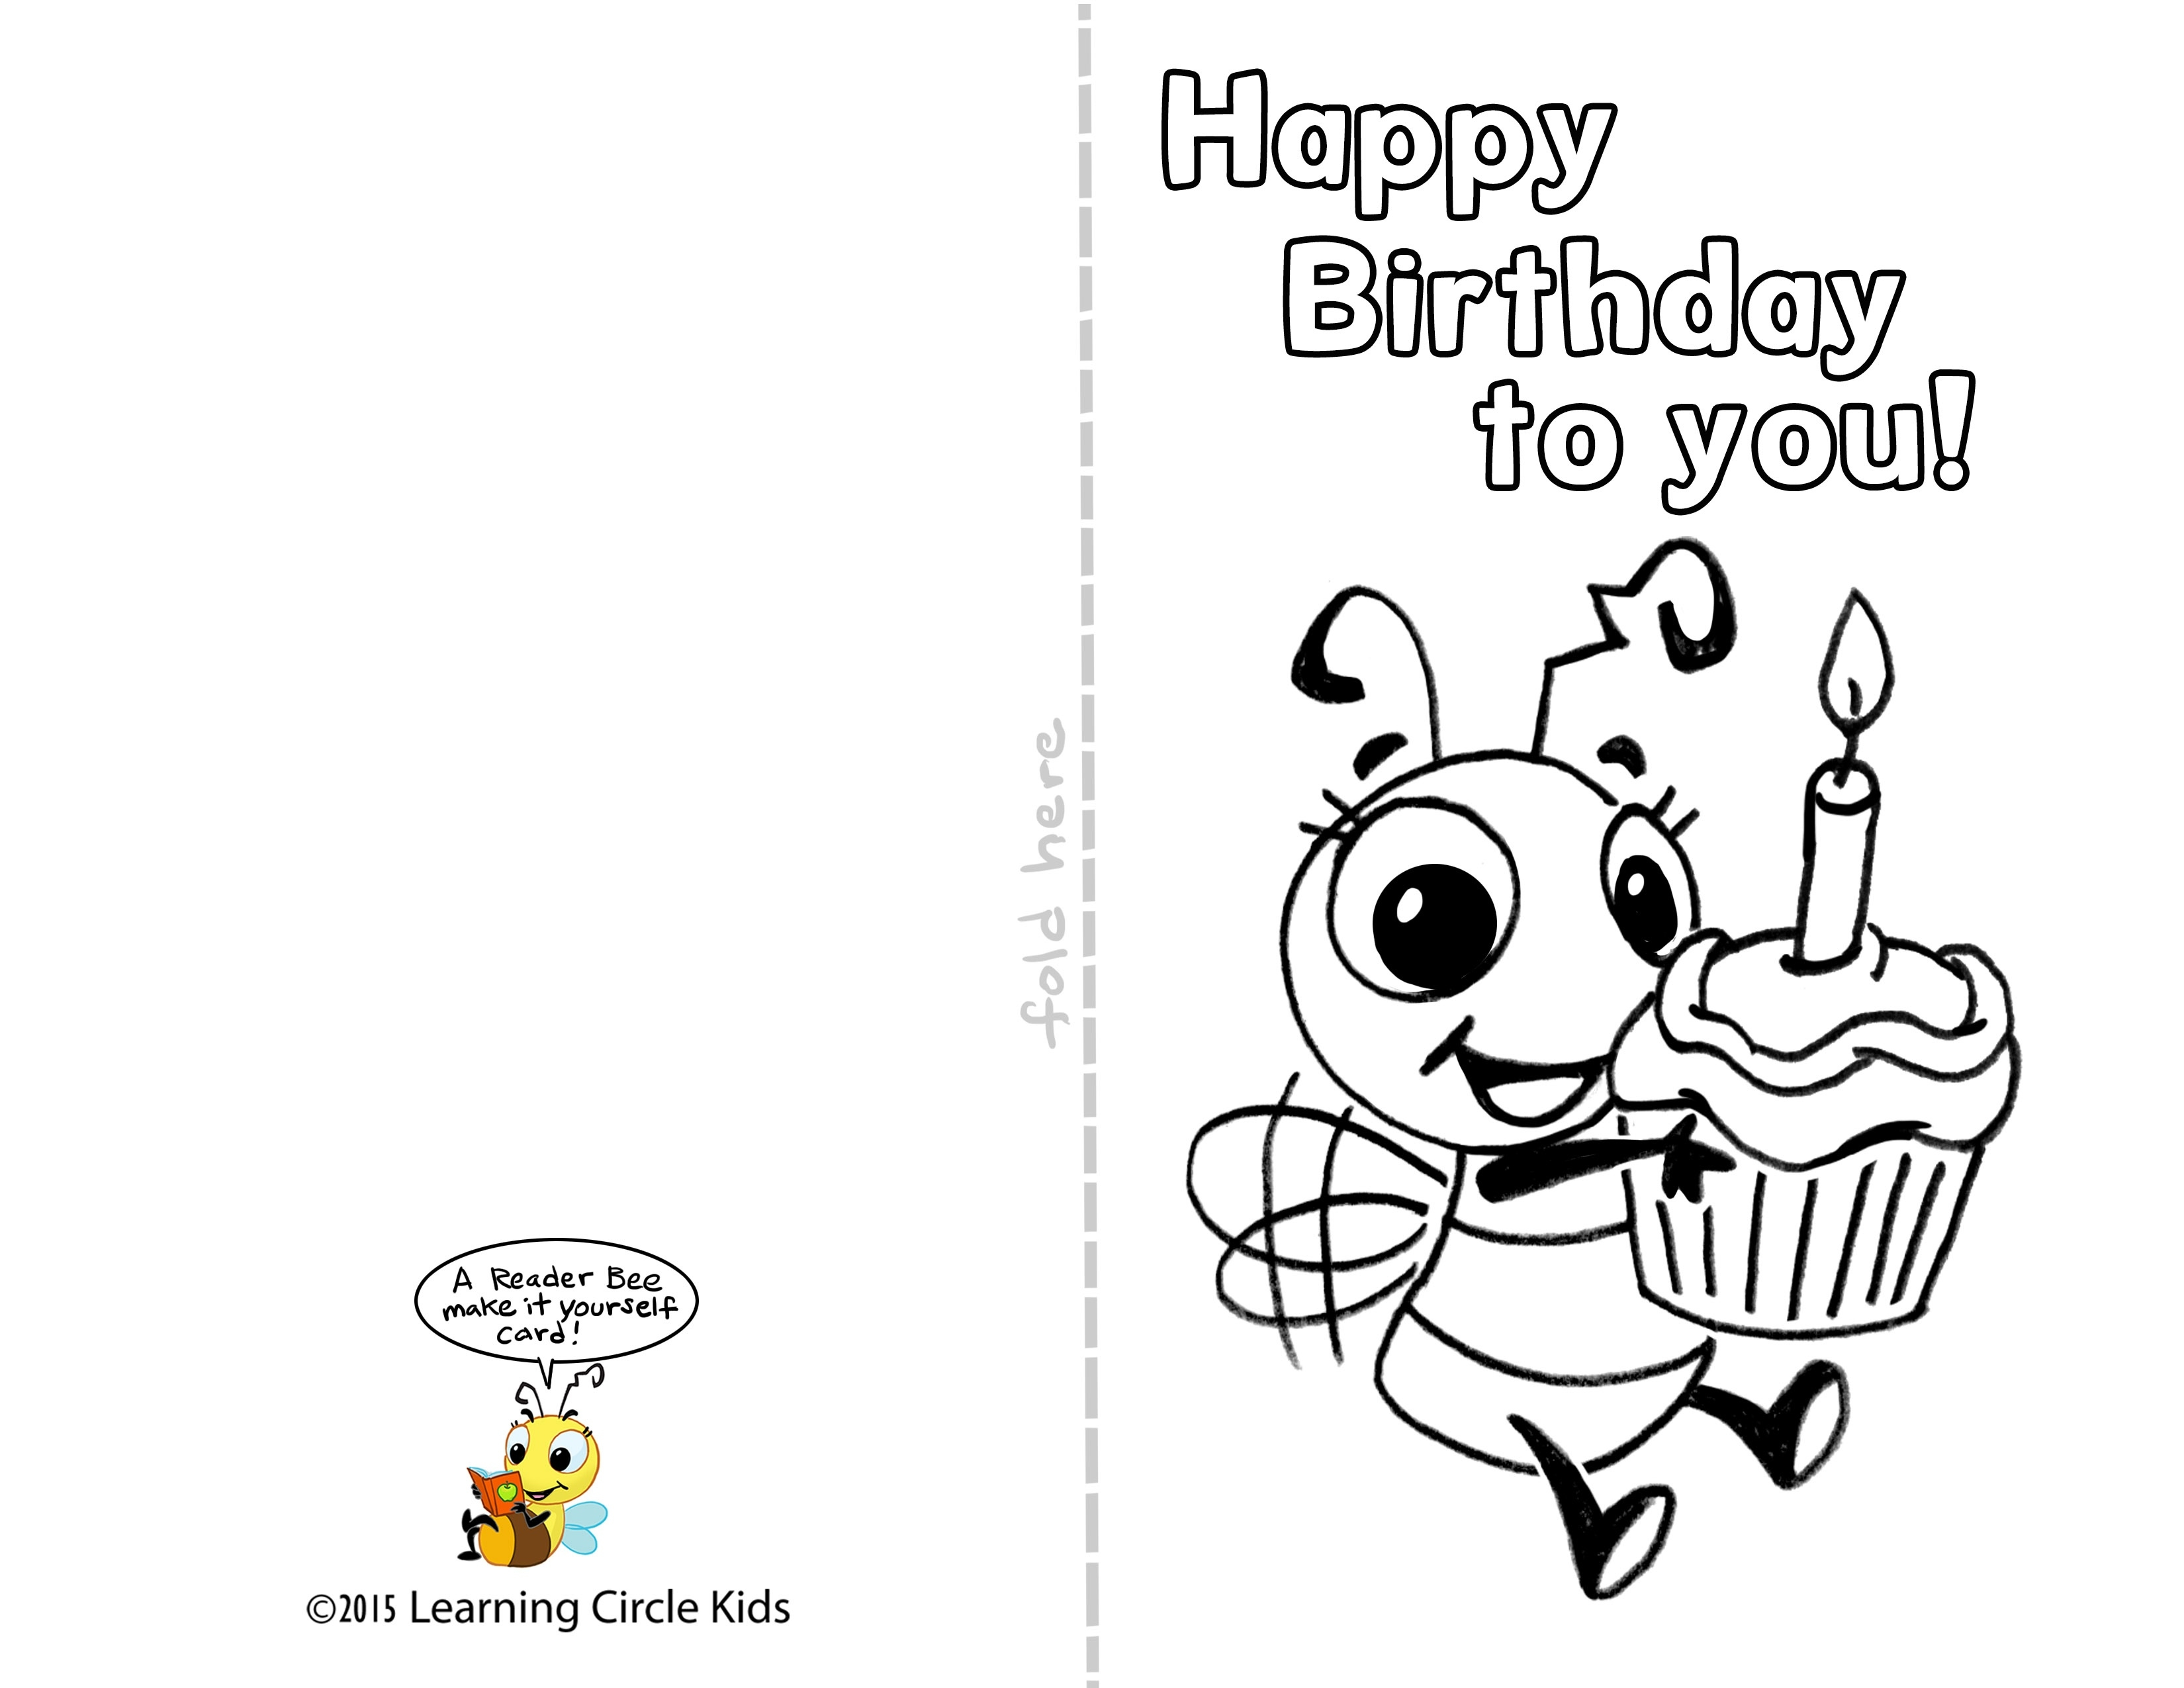 free coloring birthday cards to print ; unparalleled-free-printable-coloring-birthday-cards-odd-for-kids